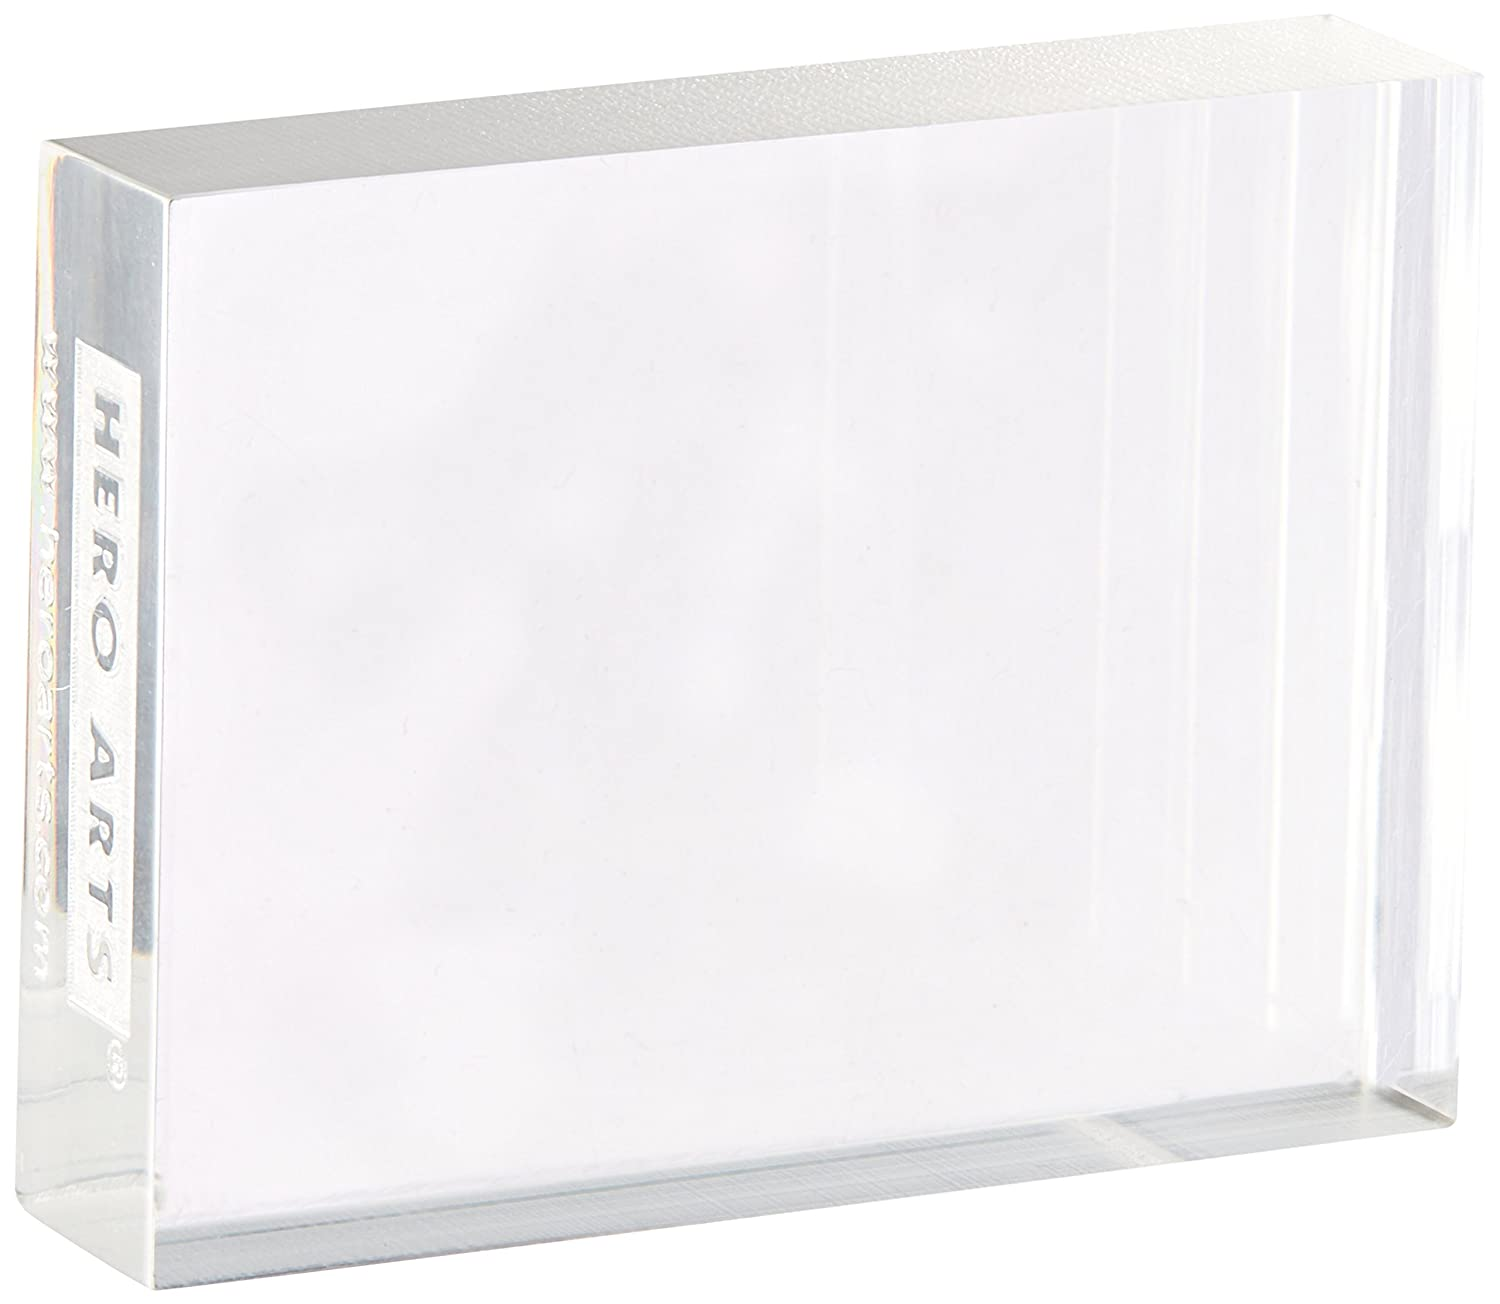 Hero Arts Acrylic Block, 4.75 by 6 4.75 by 6 CL083